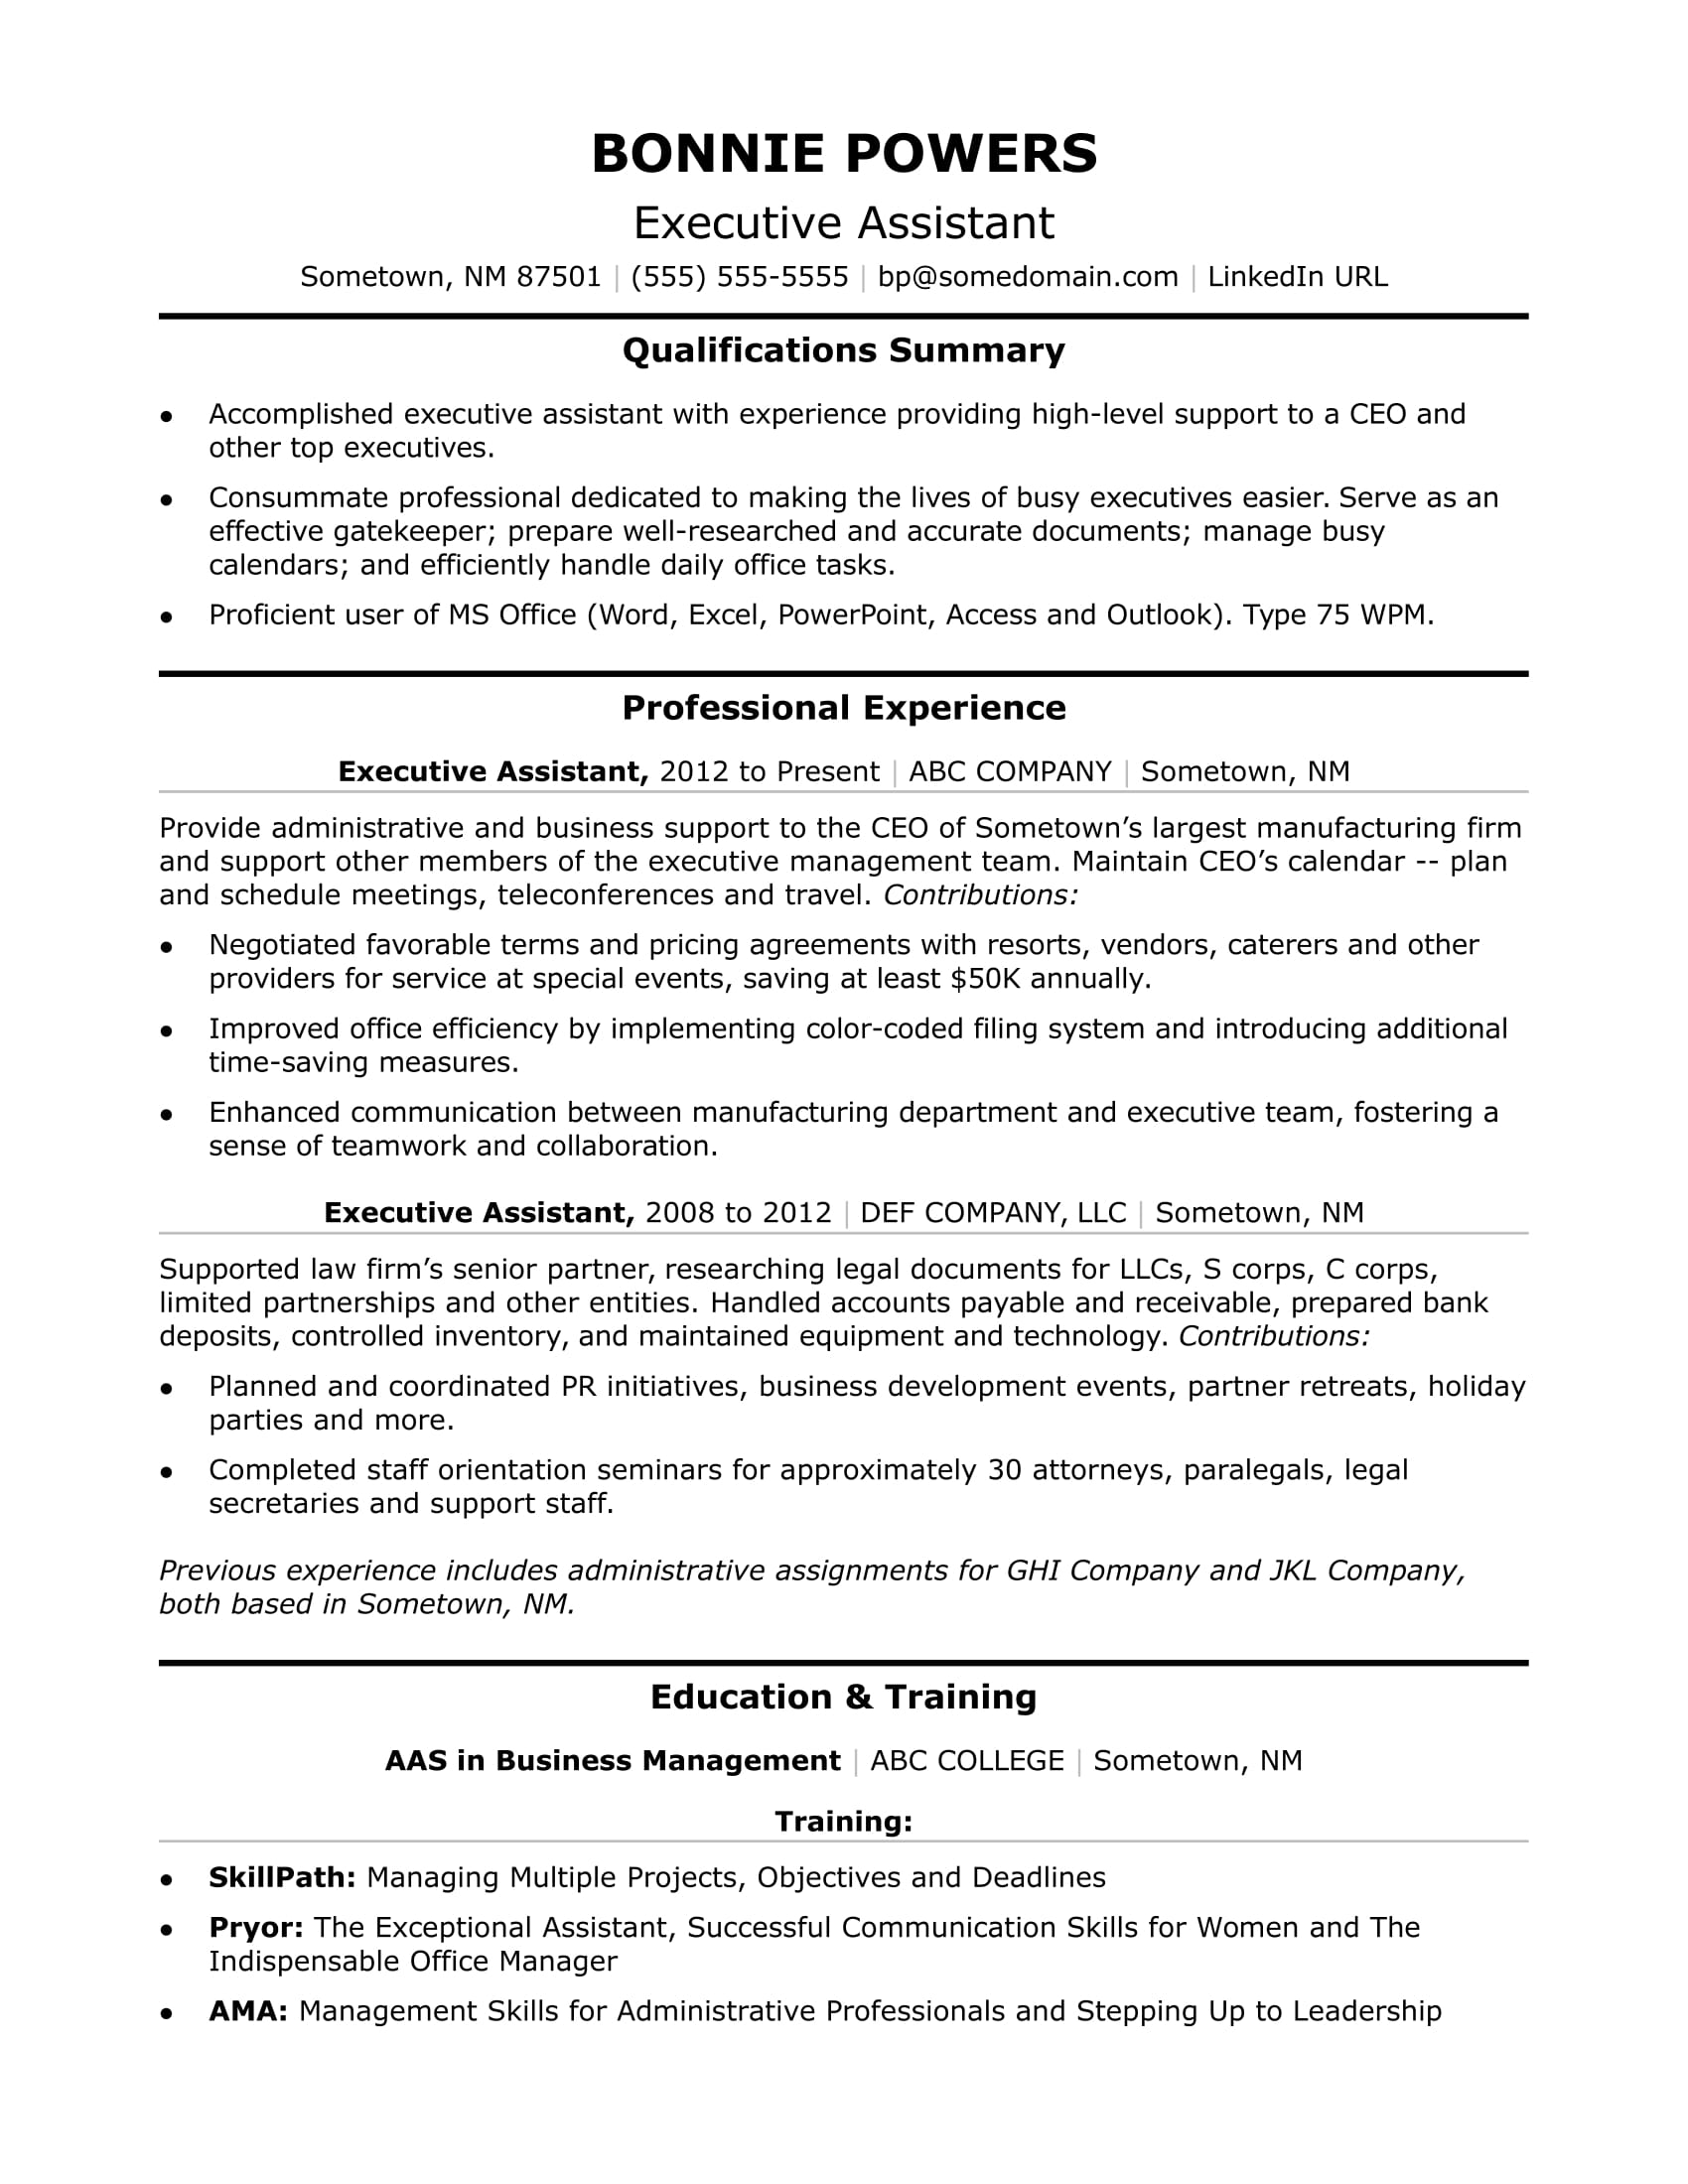 Executive administrative assistant resume sample monster executive administrative assistant resume sample thecheapjerseys Gallery